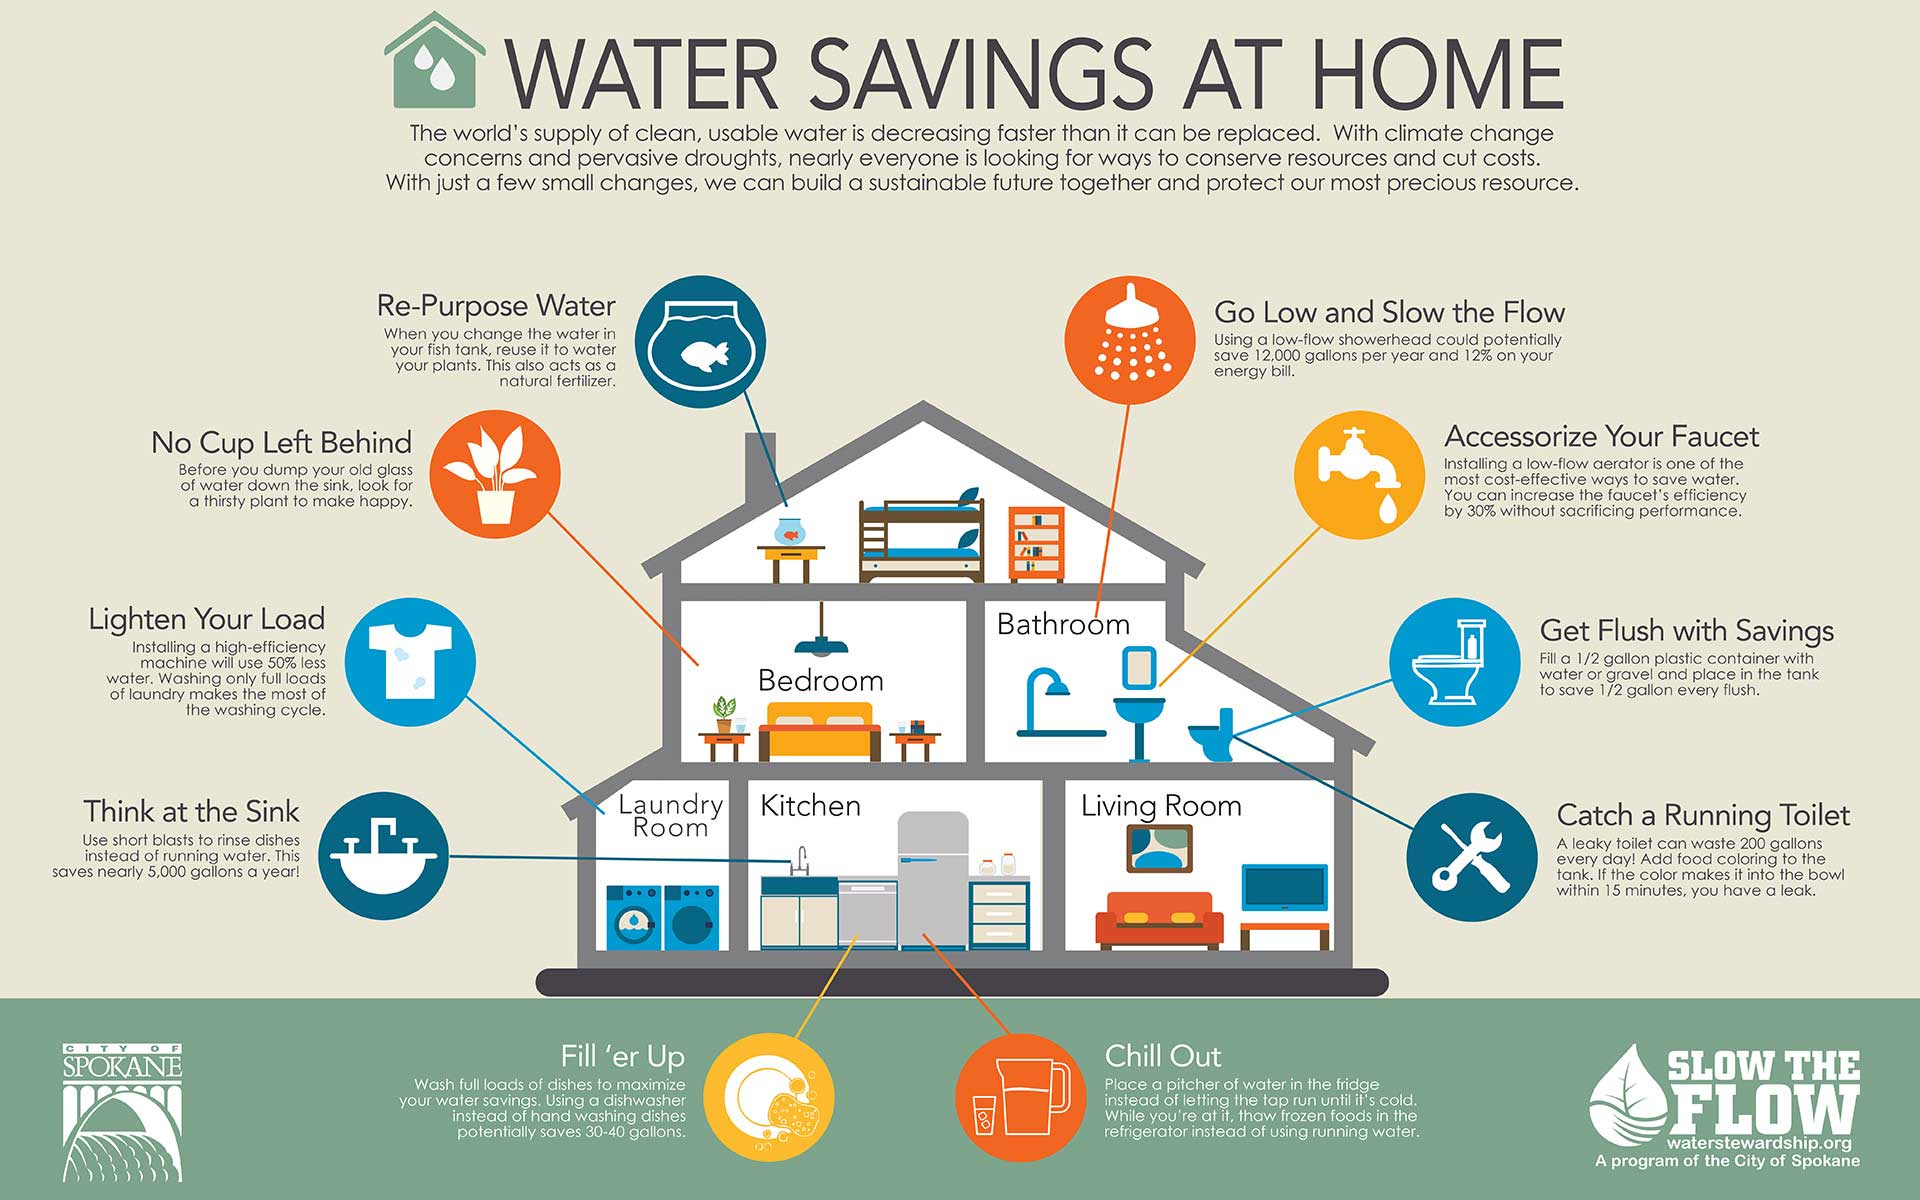 Ways Of Saving Water At Home The Image